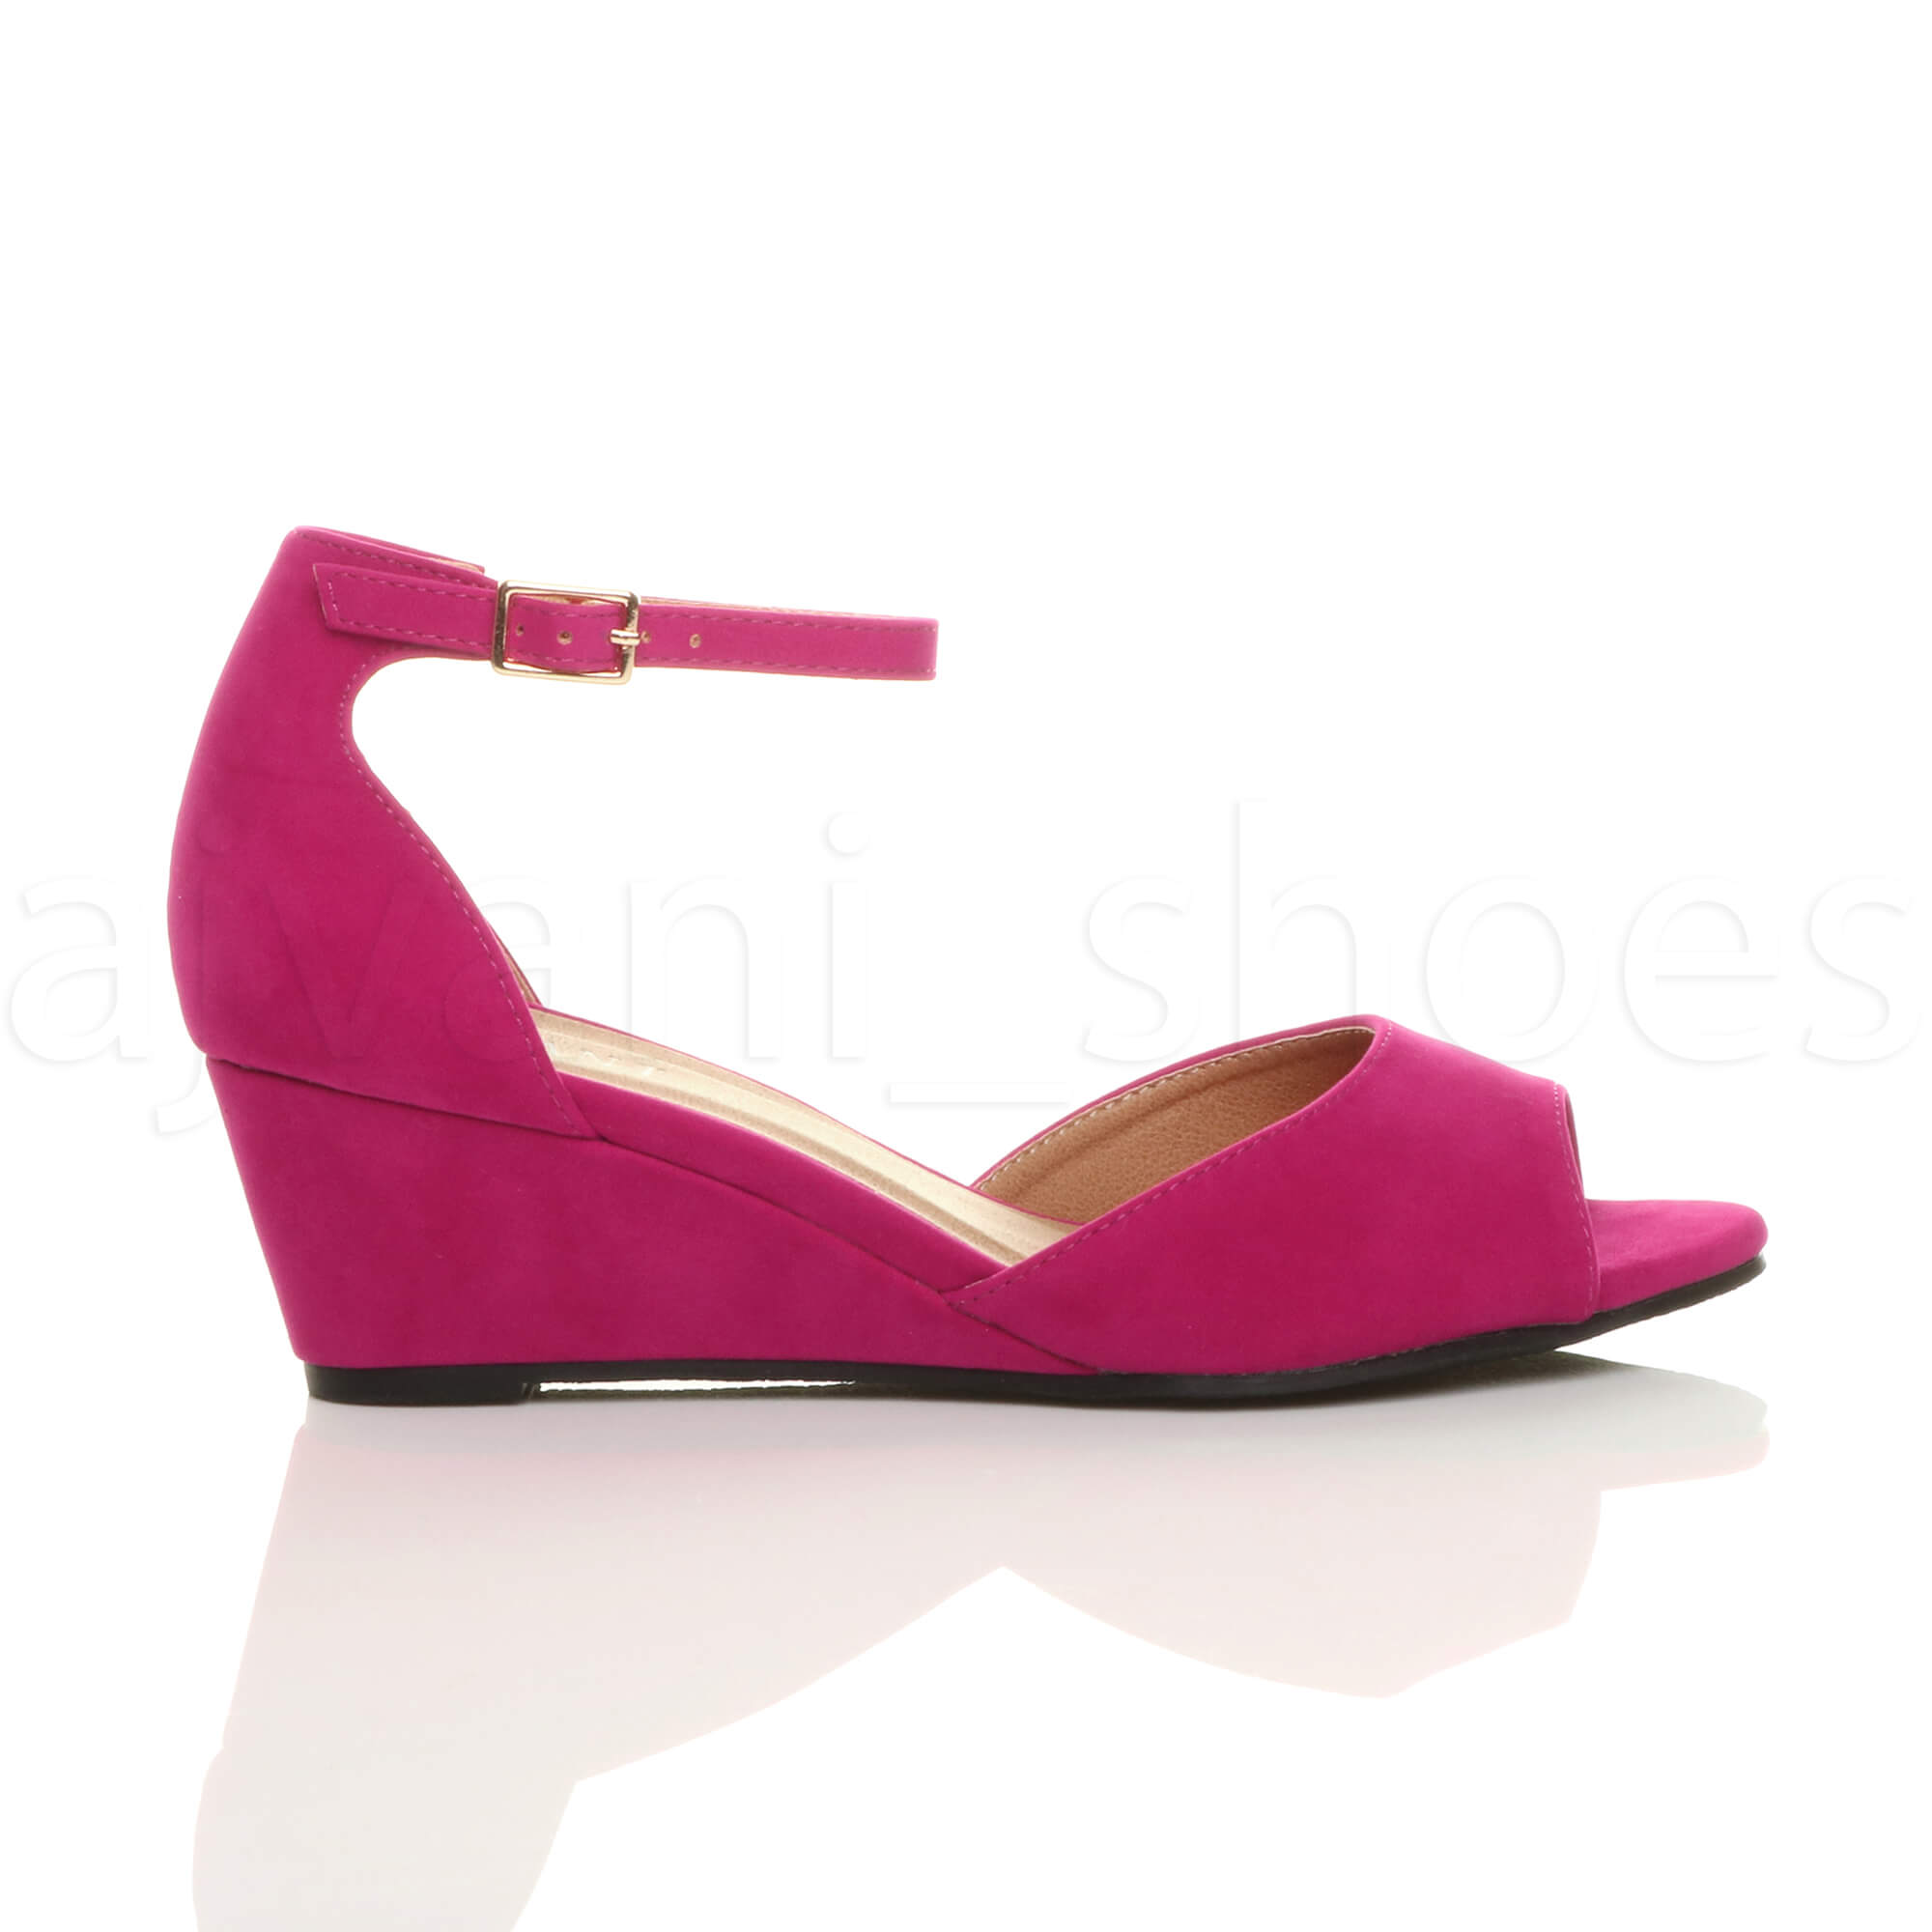 WOMENS-LADIES-LOW-MID-WEDGE-HEEL-ANKLE-STRAP-SMART-CASUAL-EVENING-SANDALS-SIZE thumbnail 43